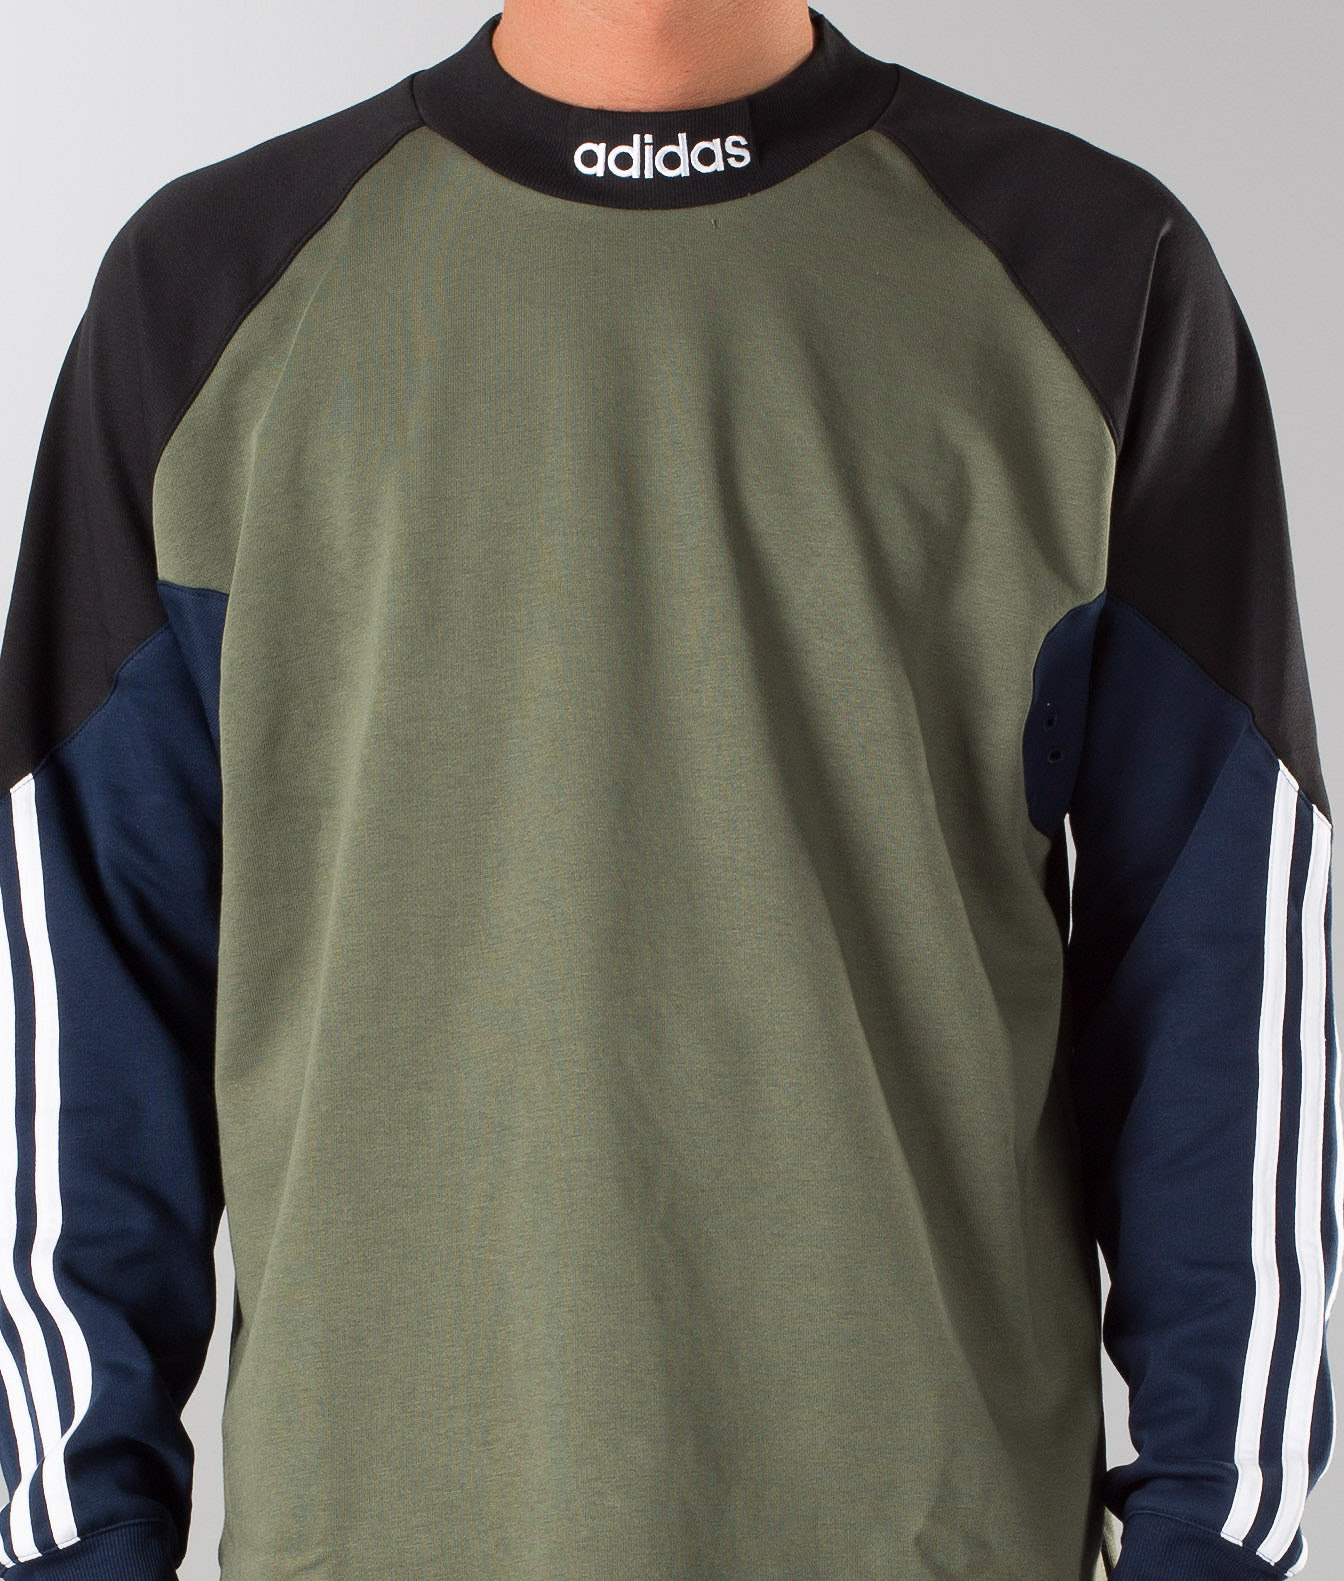 384cf34f080 Adidas Skateboarding Goalie Sweater Base Green/Black/Collgegiate ...